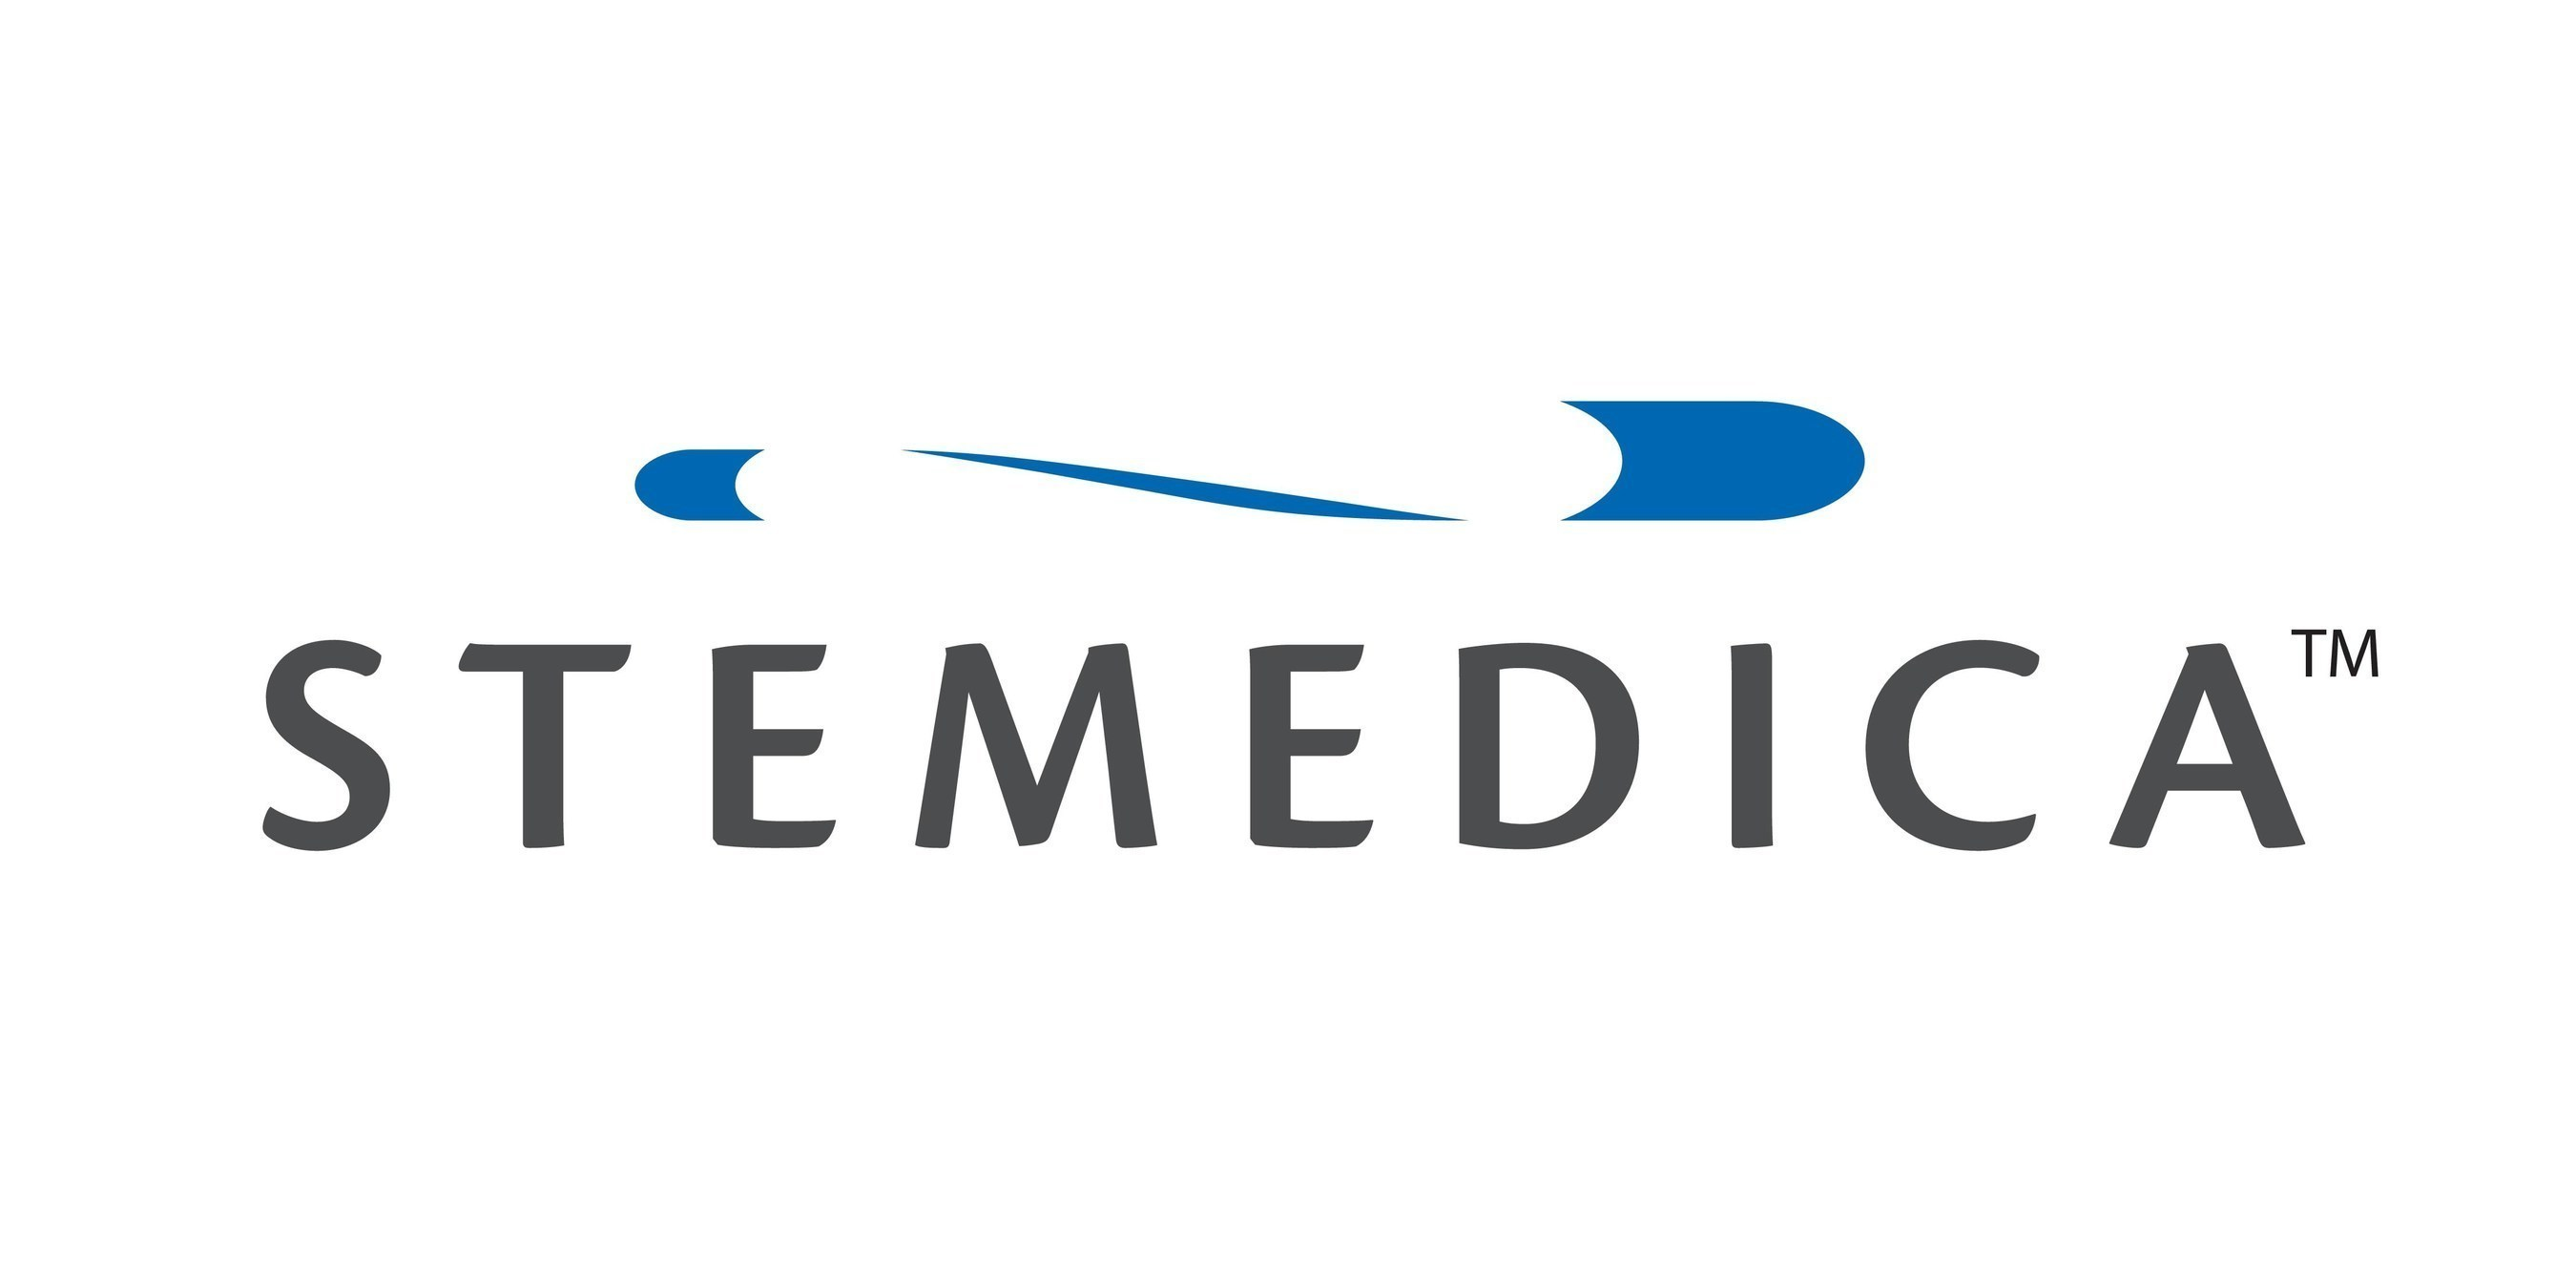 Stemedica Cell Technologies, Inc. is a specialty biopharmaceutical company which manufactures best-in-class ...